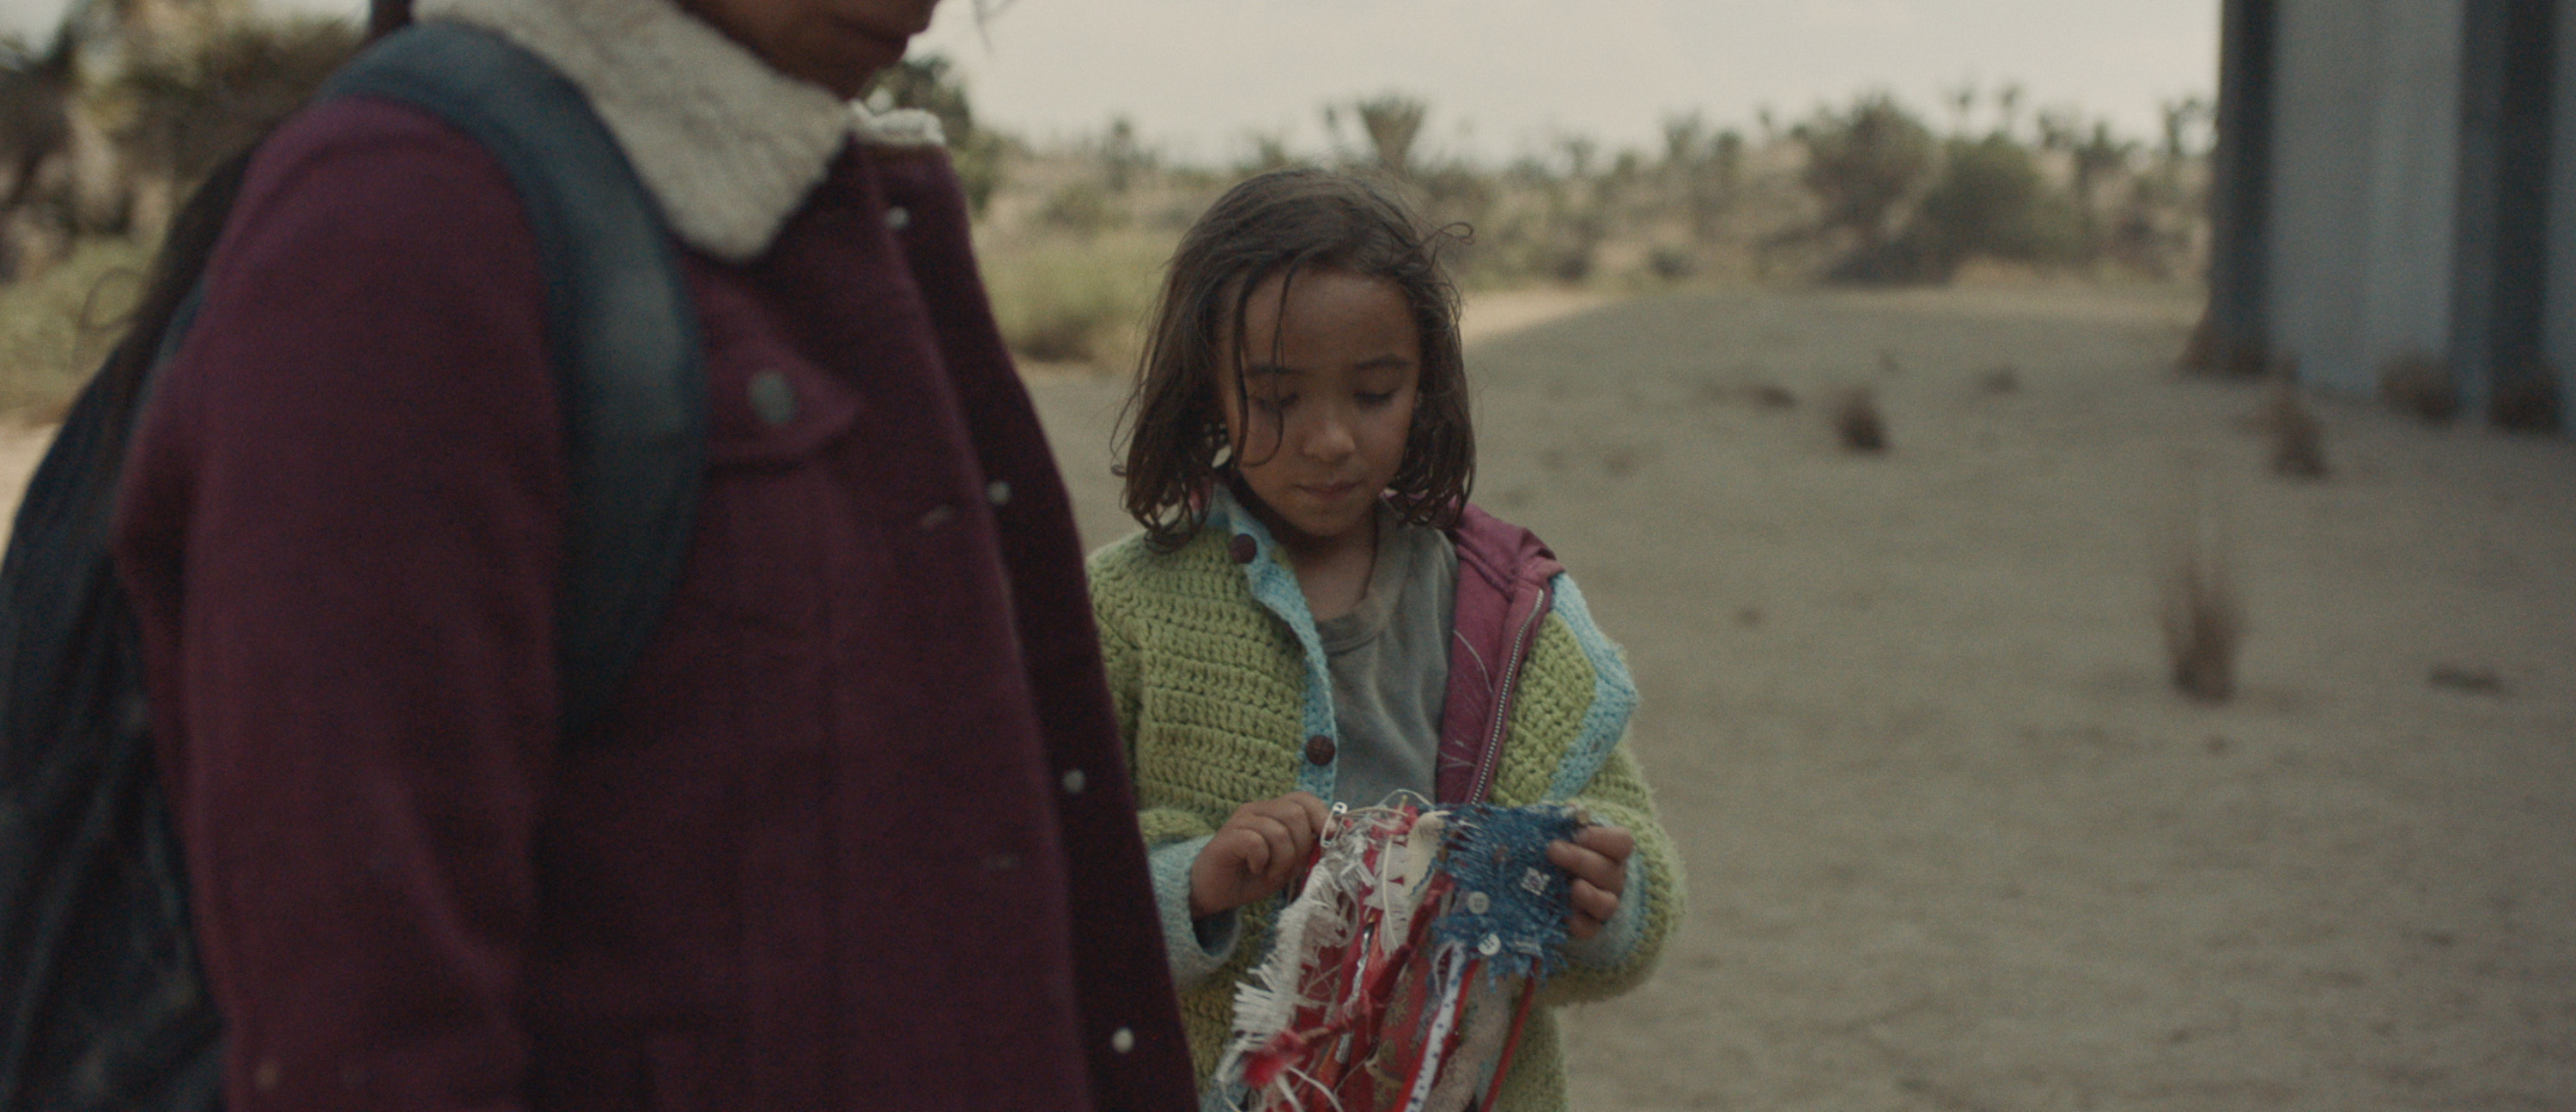 84 Lumber's Super Bowl ad revolved around immigration, highlighting how quite a few ads this year chose to discuss serious issues facing the country. (credit: 84 Lumber via Newsela)